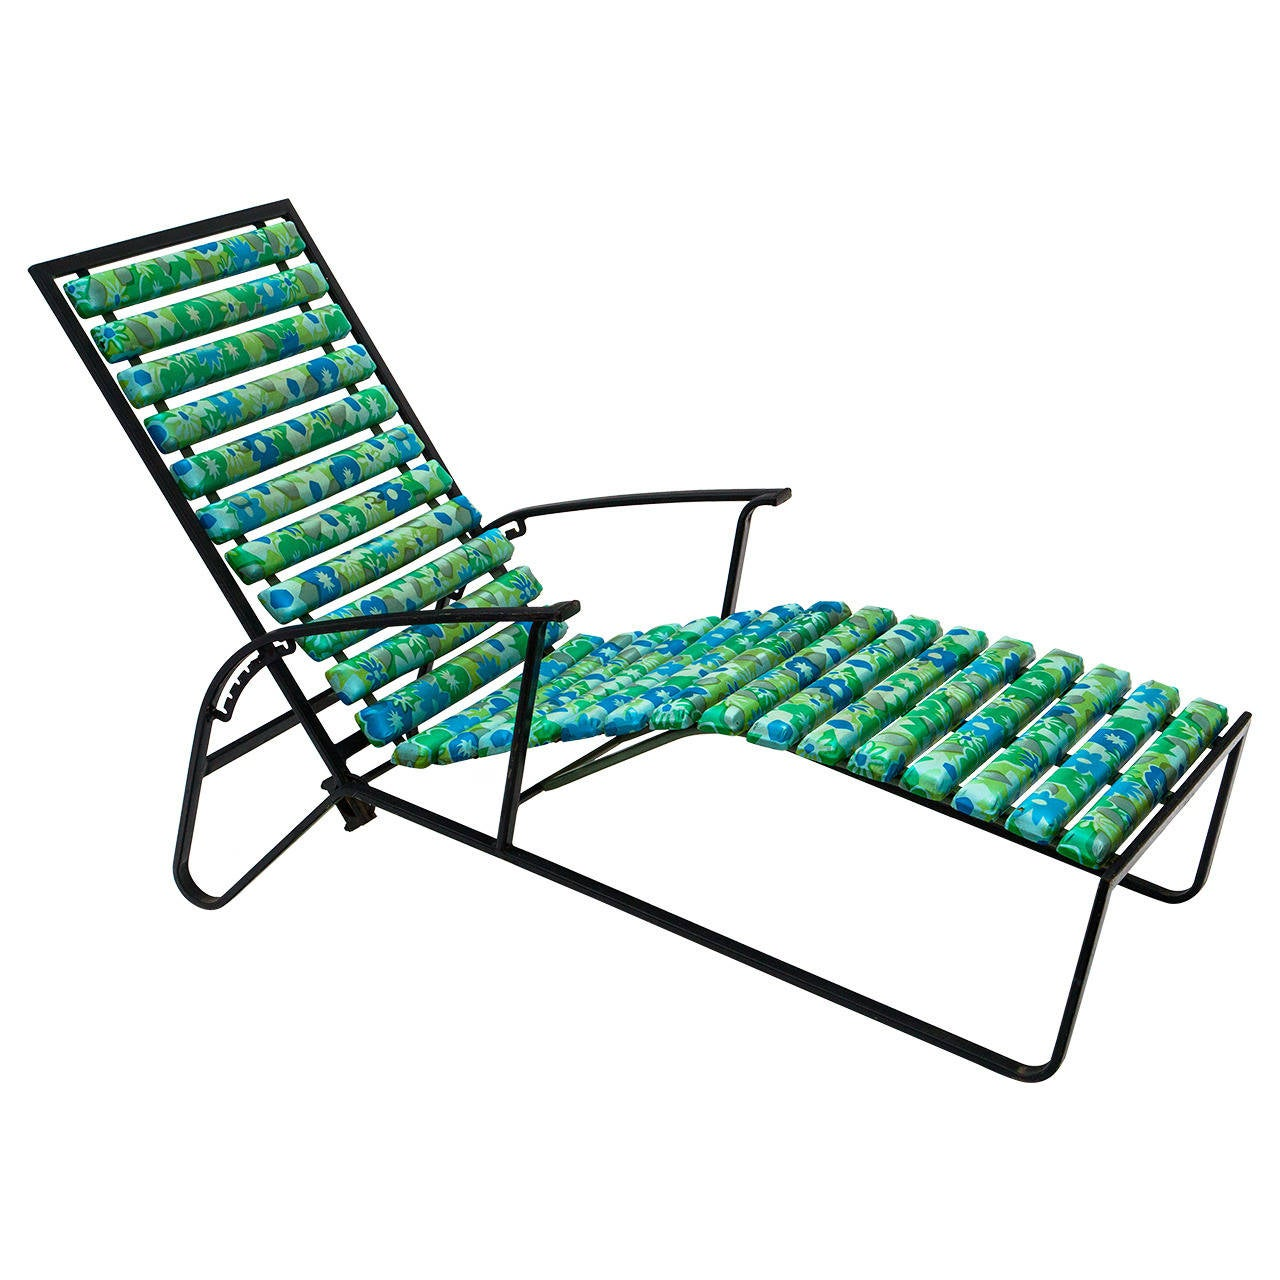 Awesome Tubular Steel Patio Reclining Lounge Chair By Samsonite 1